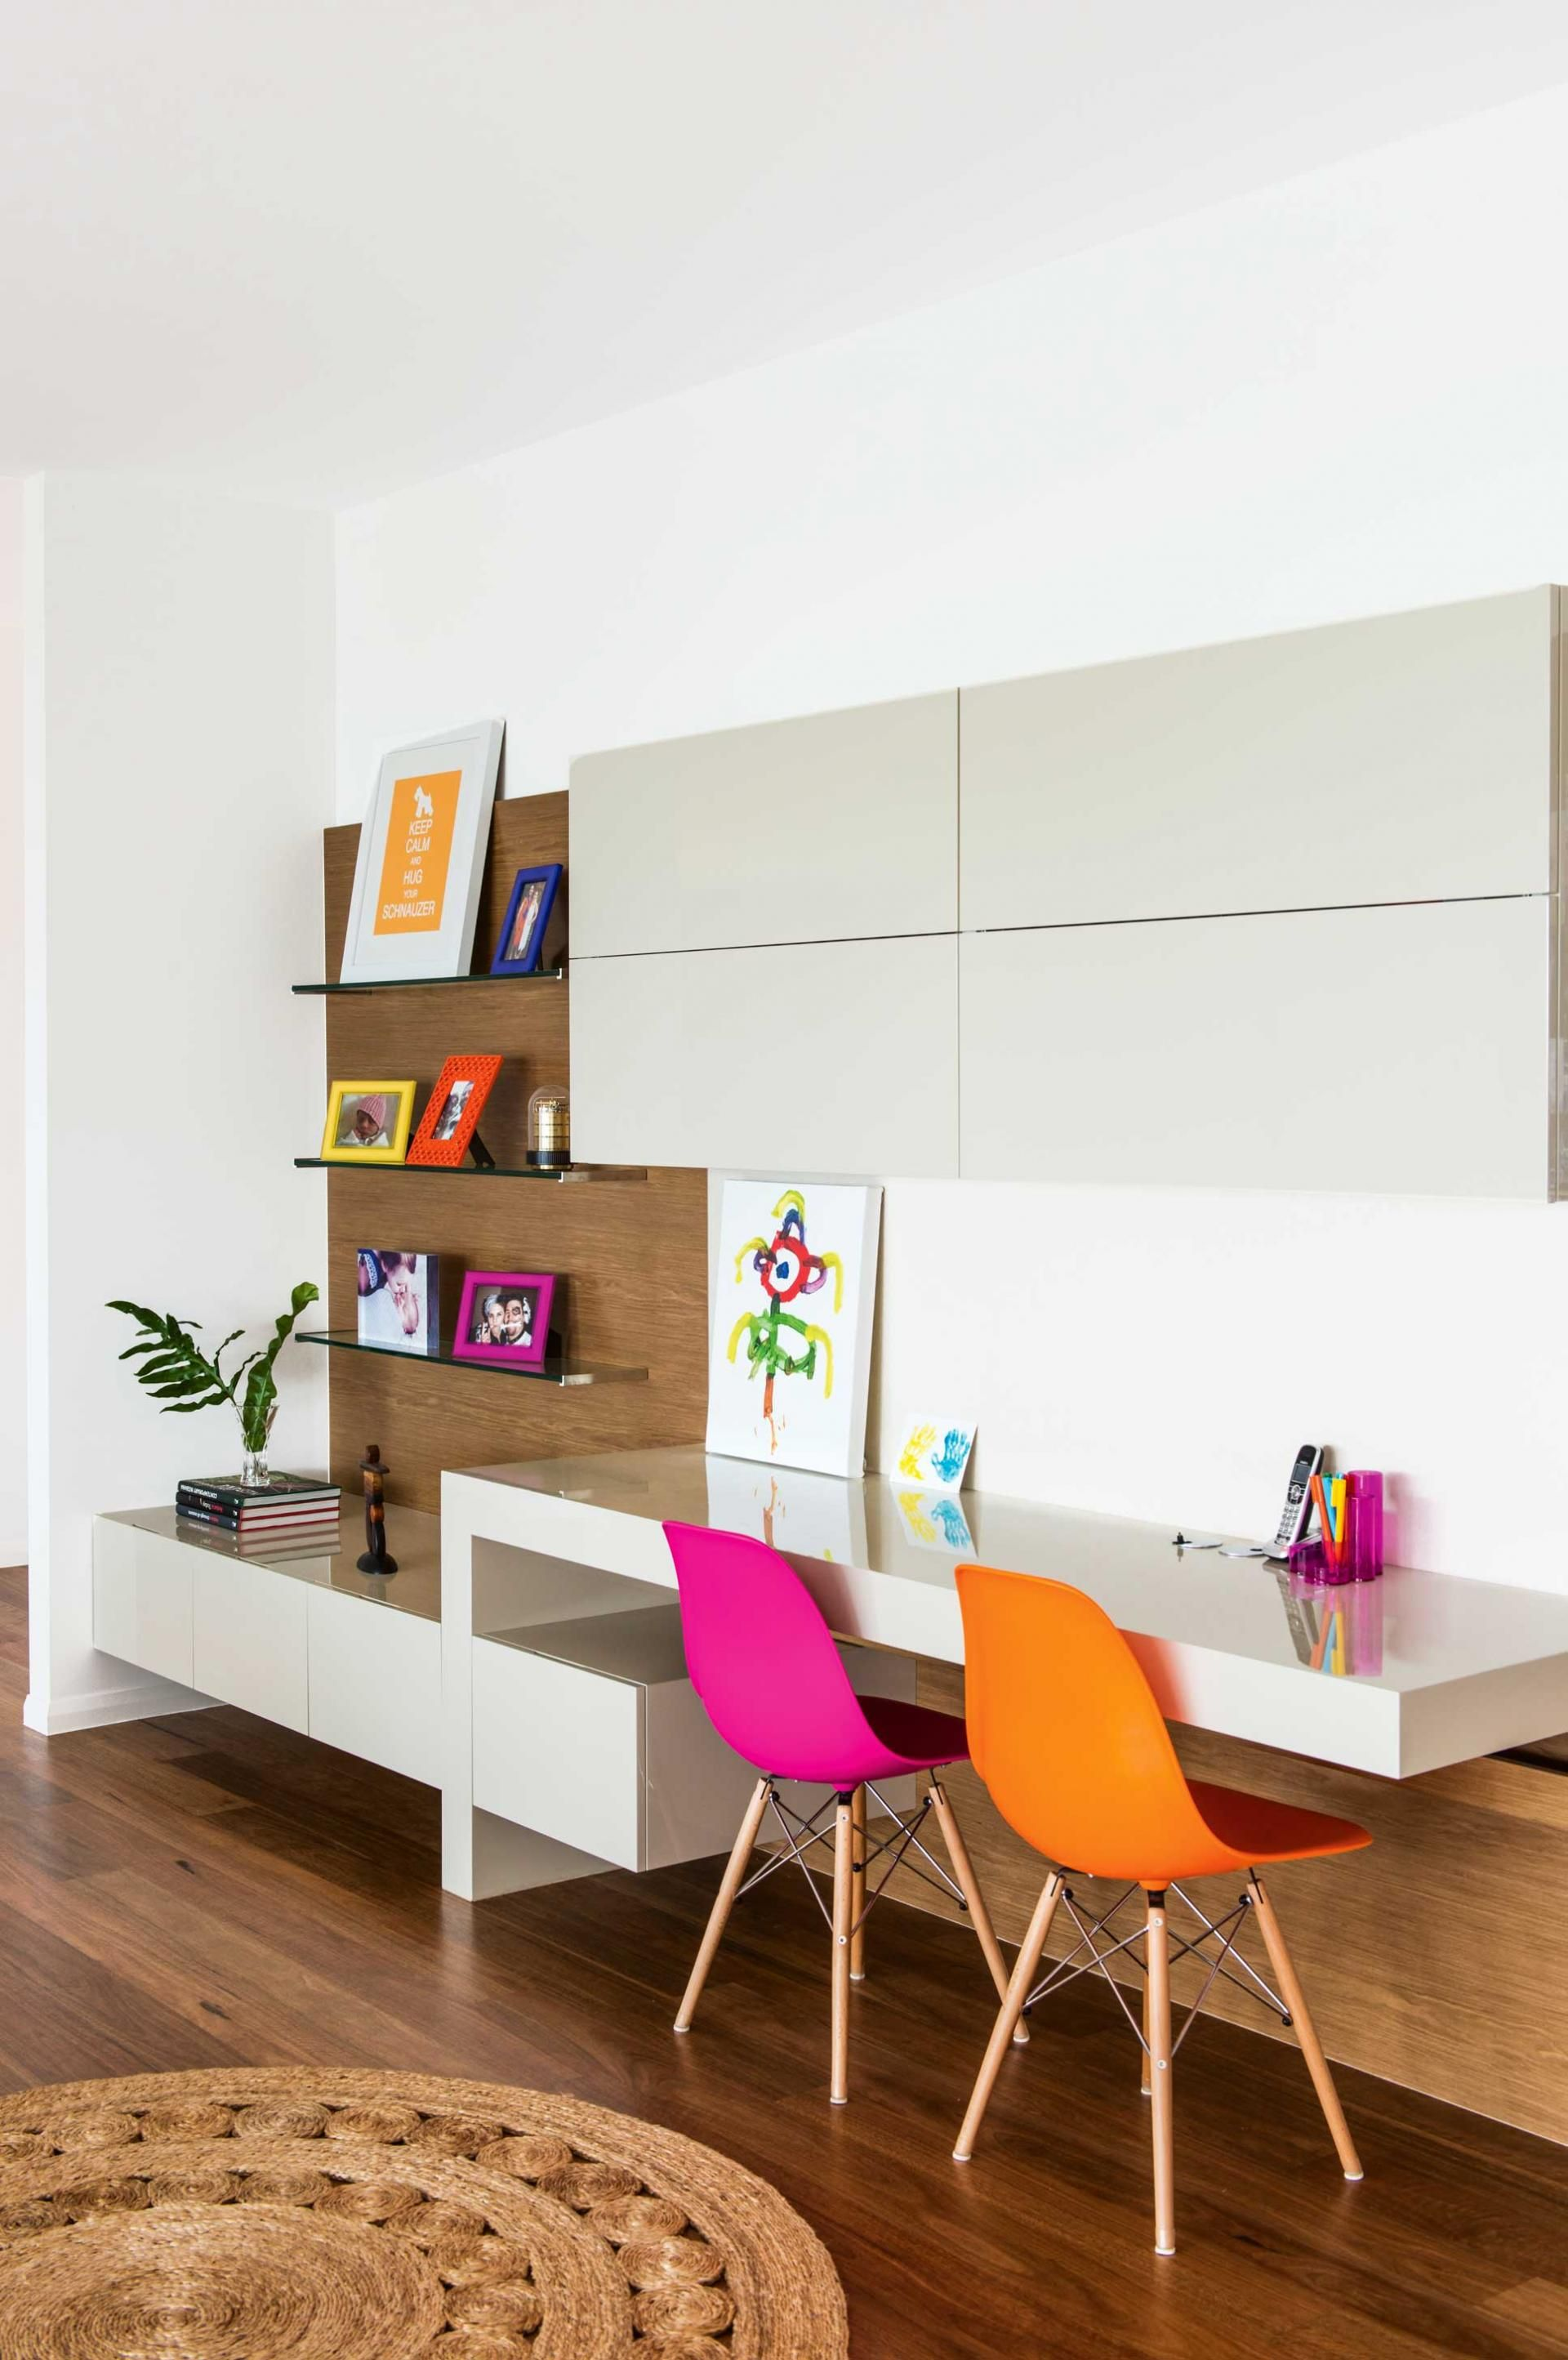 Nice Design Study Room: Our Guide To Bespoke Joinery. From The February 2016 Issue